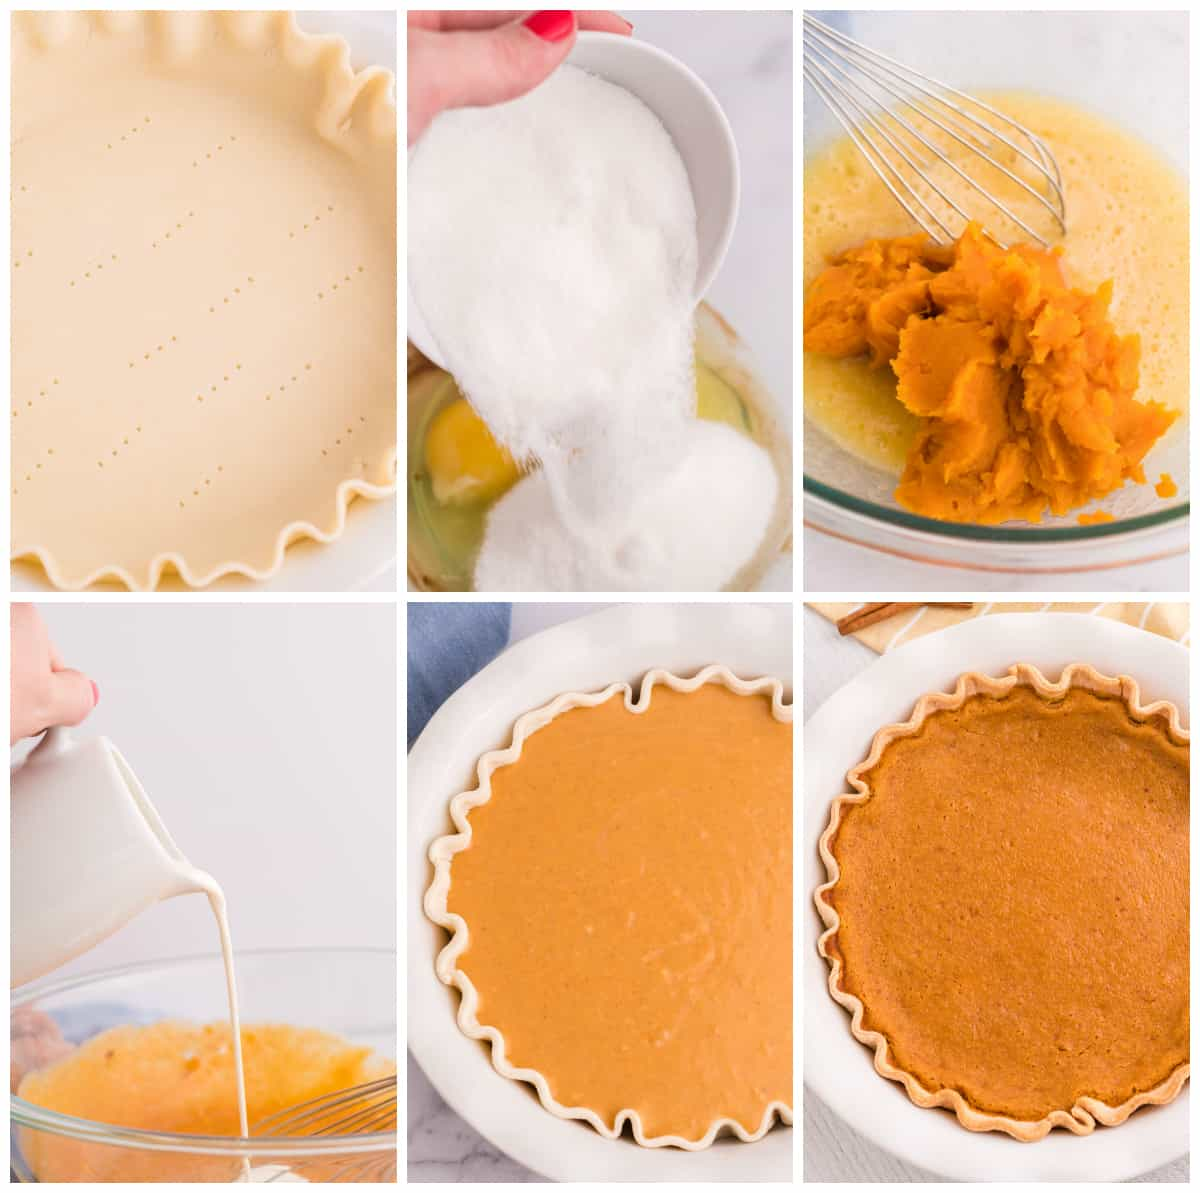 Step by step photos on how to make Sweet Potato Pie